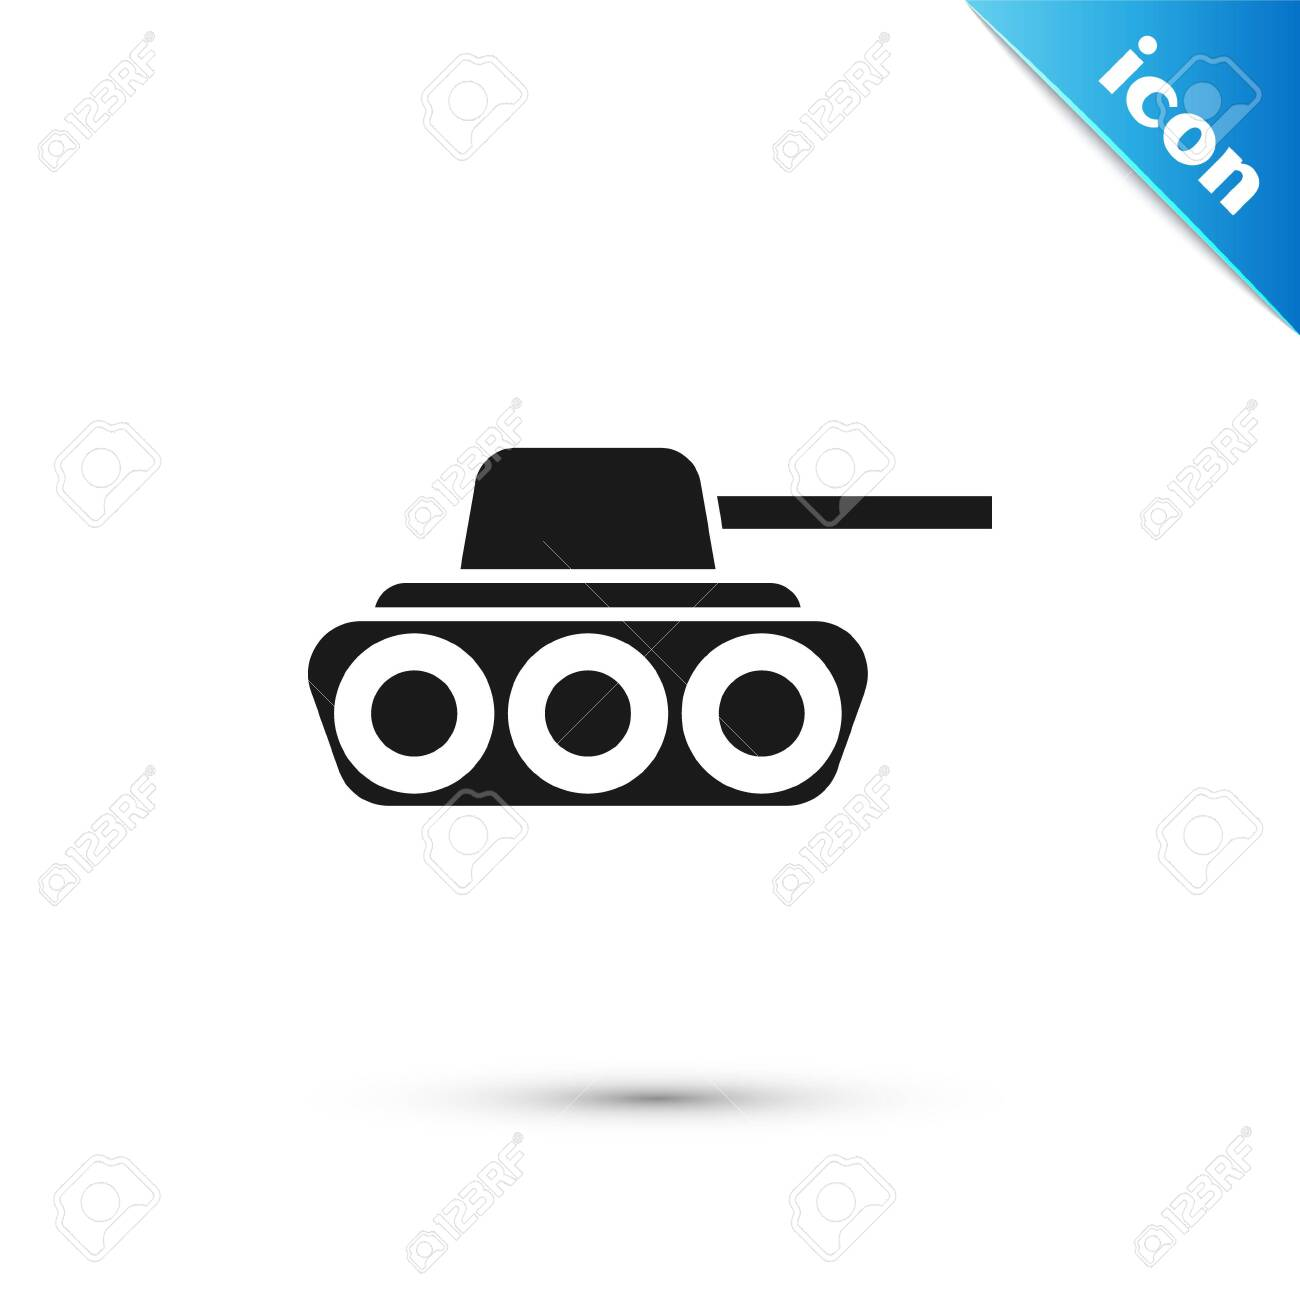 black military tank icon isolated on white background vector royalty free cliparts vectors and stock illustration image 137298405 123rf com